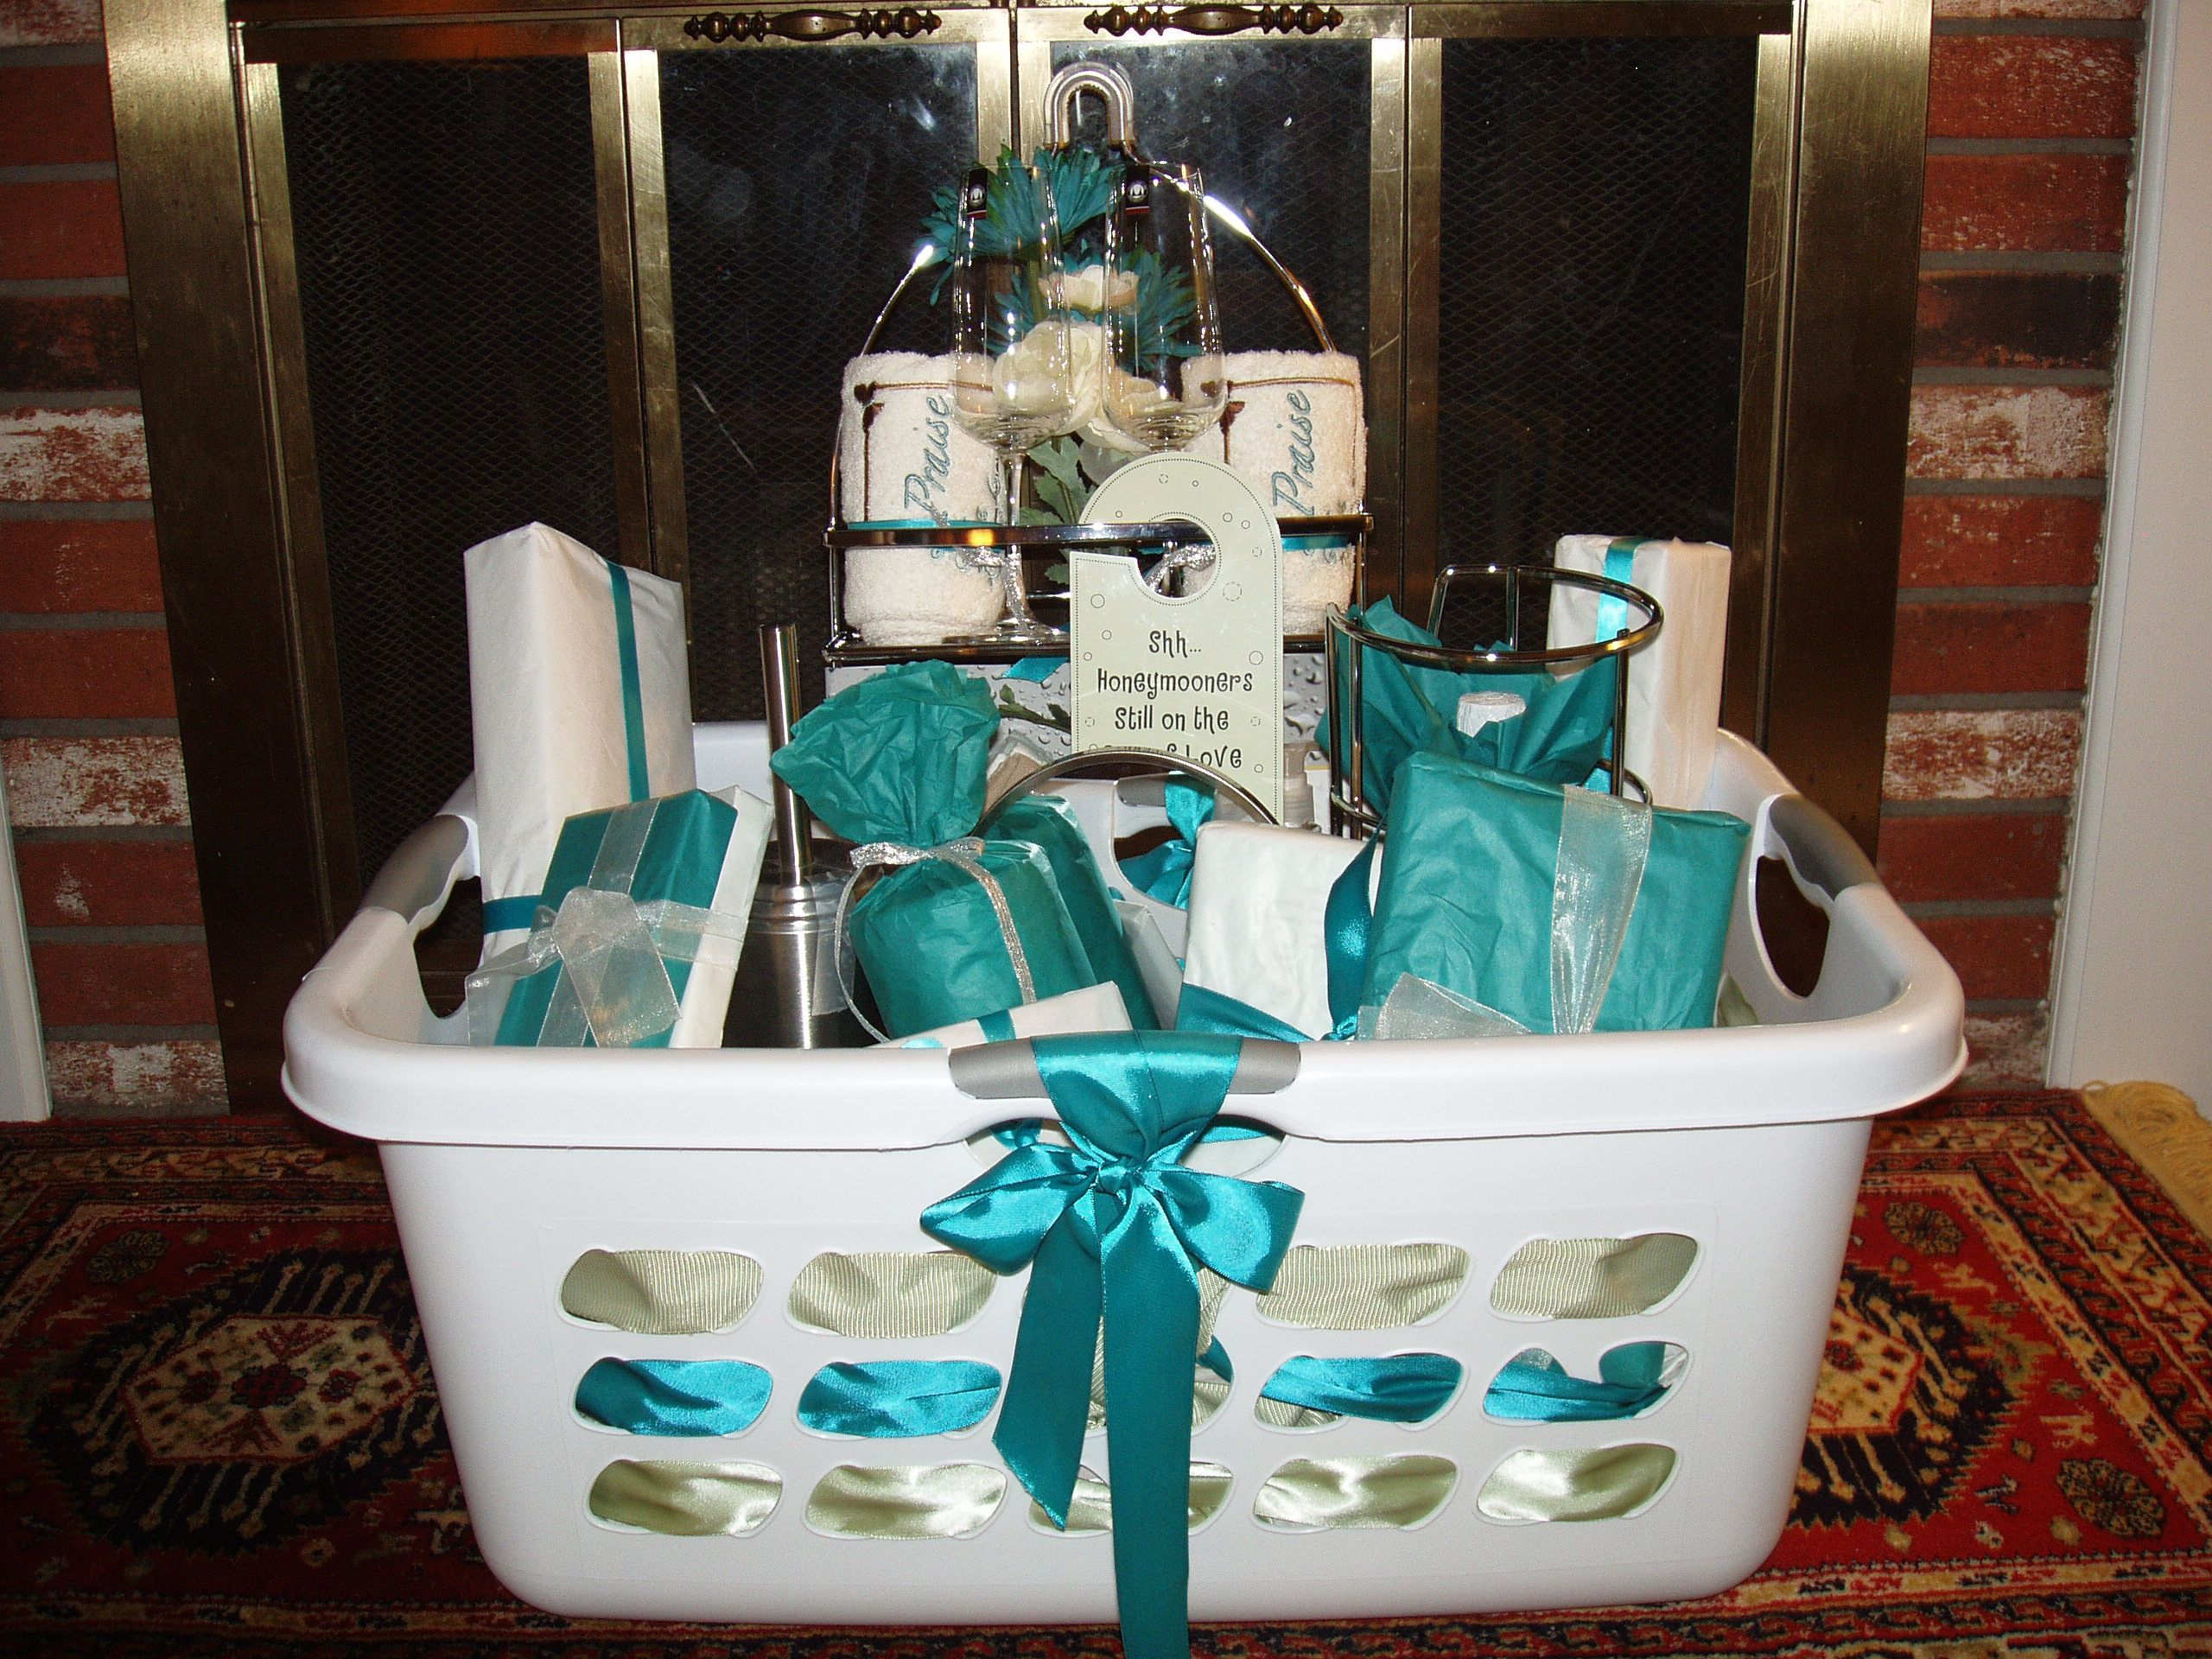 Bridal shower basket basket ideas pinterest bridal for Bathroom basket ideas for wedding